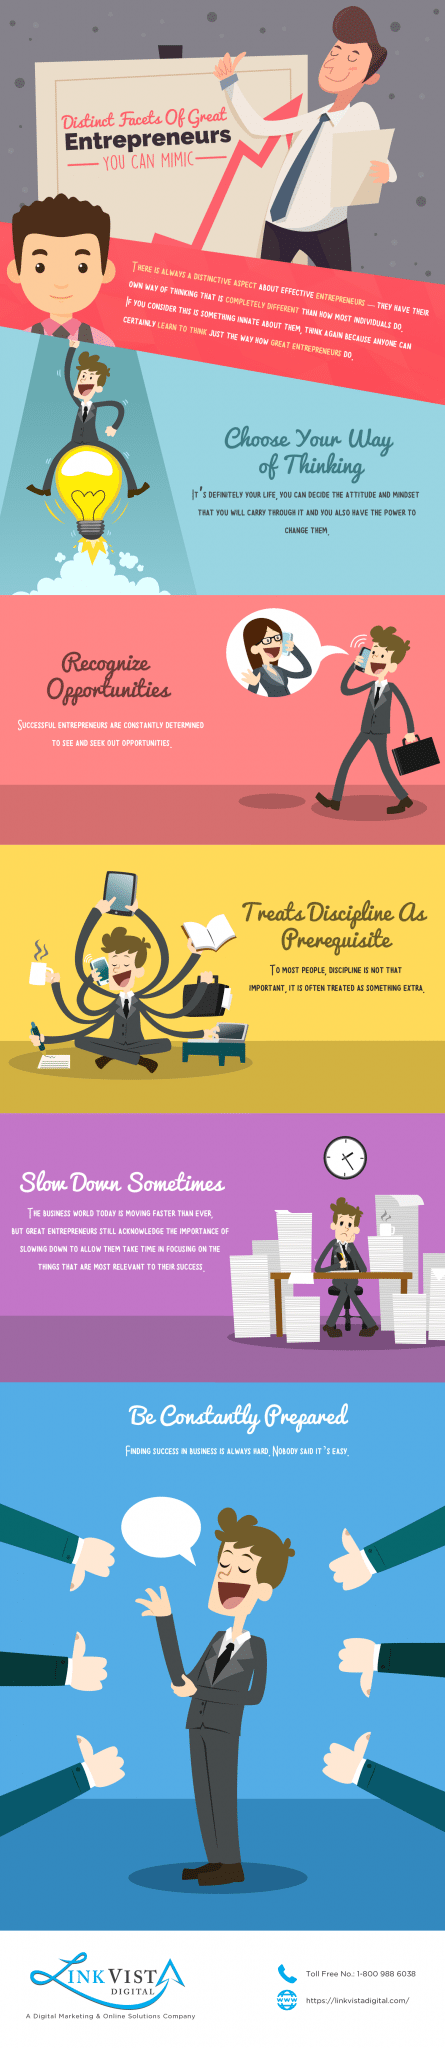 infographic-facets-of-great-entrepreneurs-you-can-mimic-1